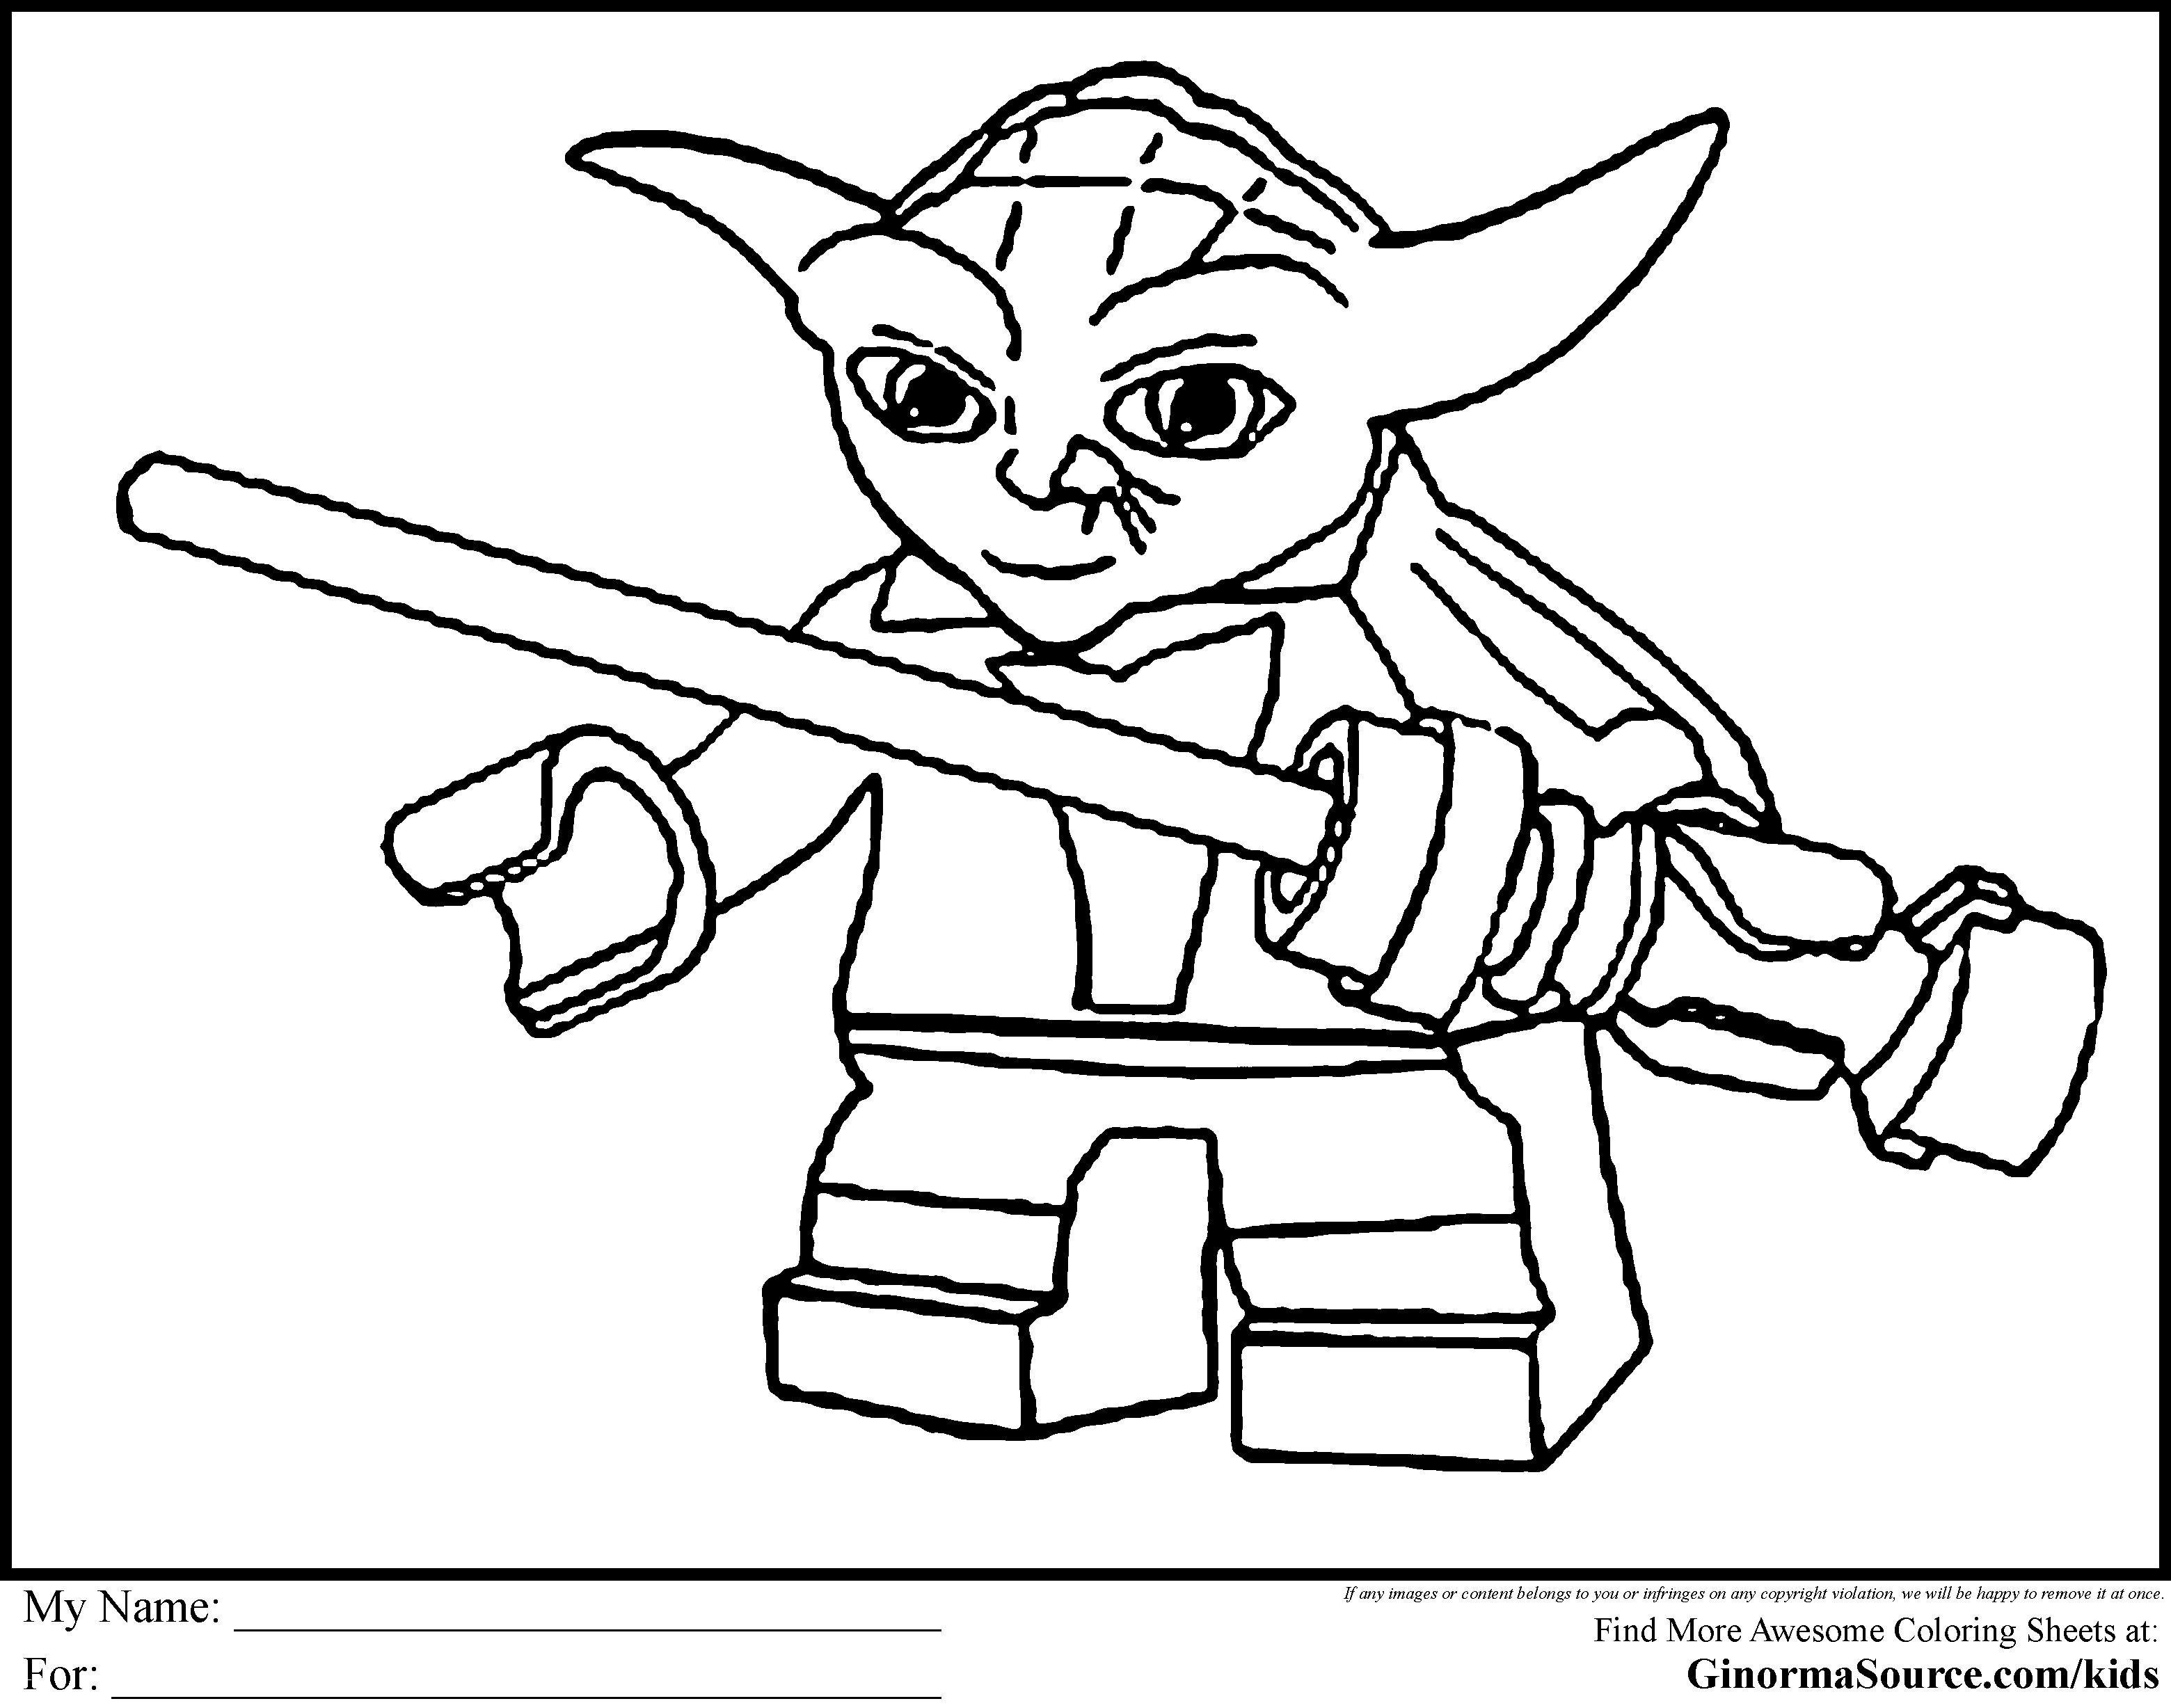 Star Wars Coloring Pages Inspirational Lego Star Wars Coloring Pages Star Wars Coloring Book Lego Coloring Pages Star Wars Coloring Sheet